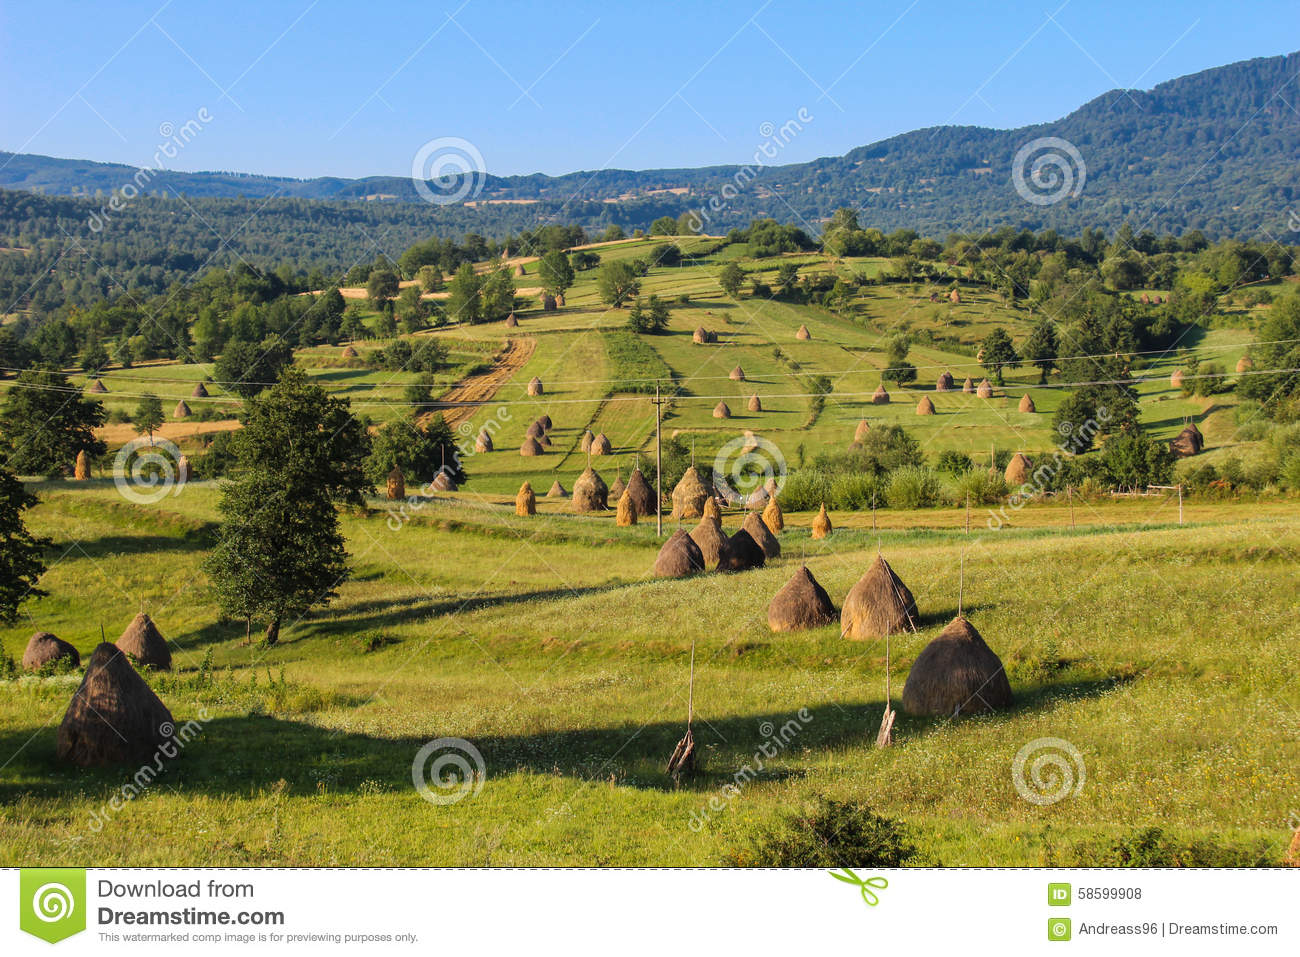 Kosice From Air Slovakia 2 likewise Khibiny Mountains besides Royalty Free Stock Photos Danke Image17285818 additionally Musee D Orsay Paris France also Greenthumb 11362. on nature in romania